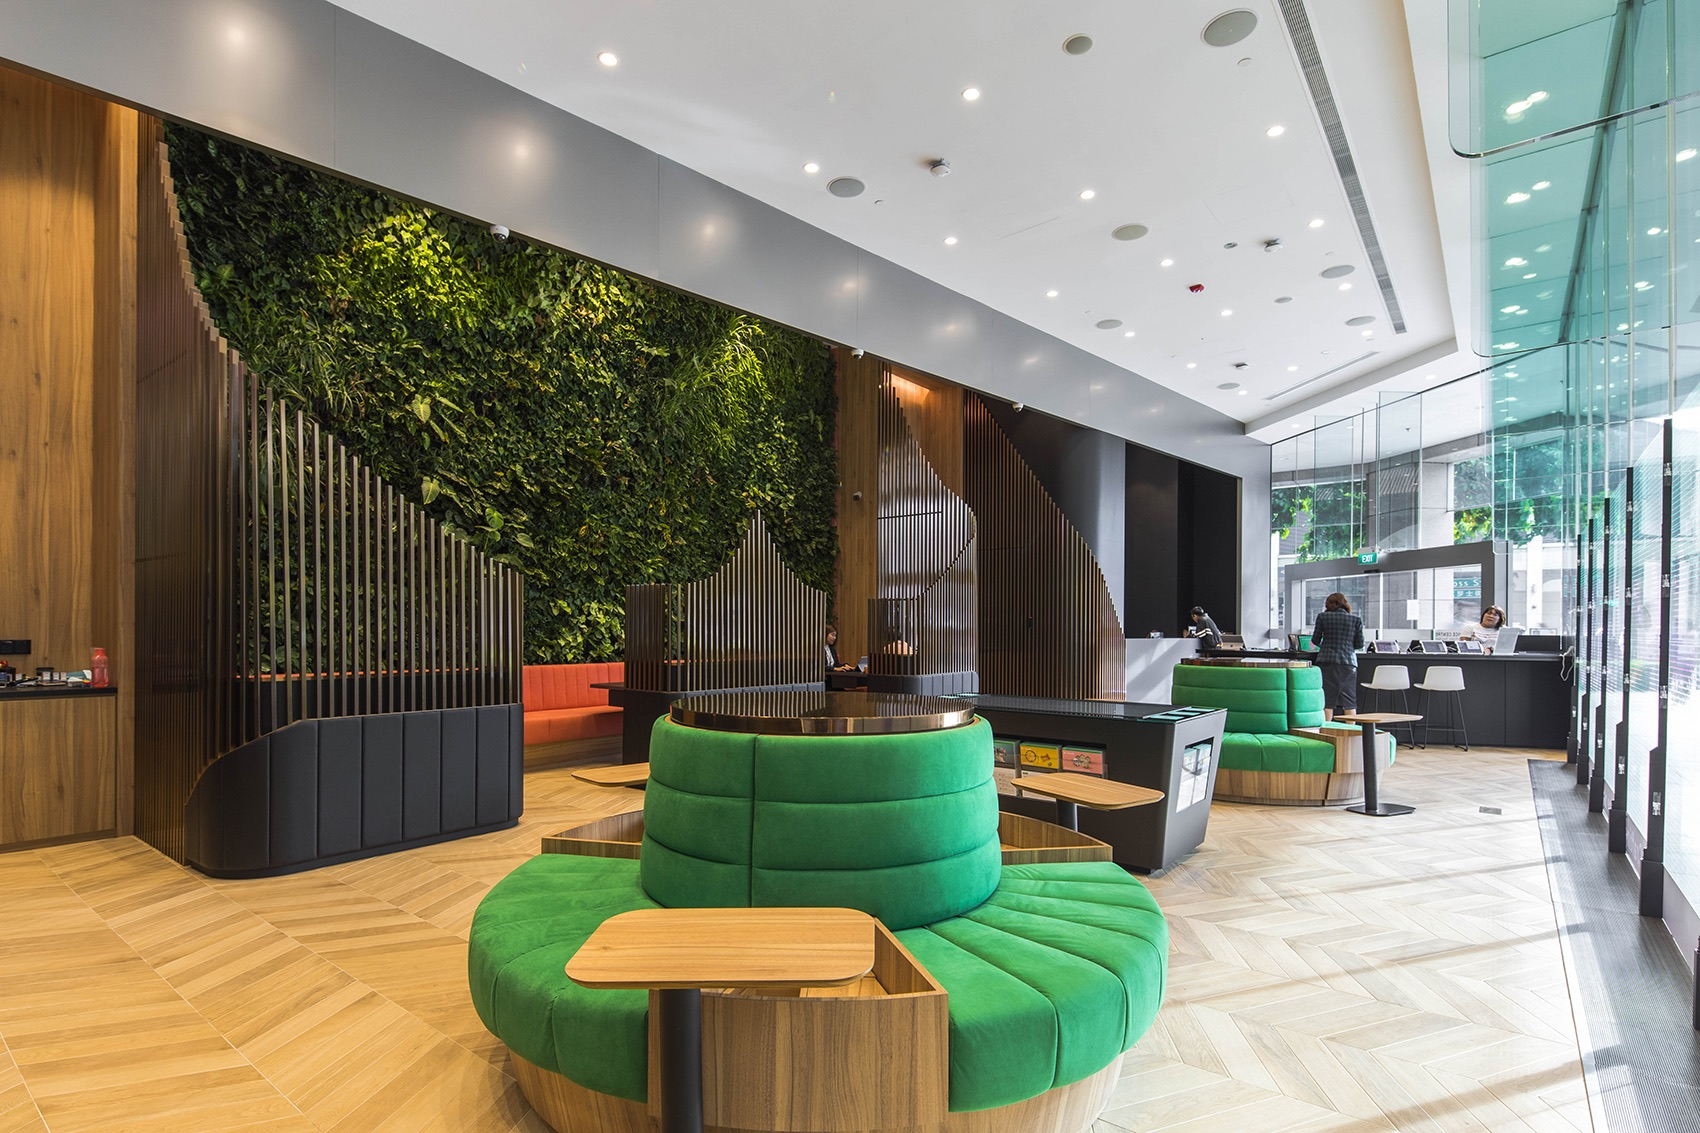 A Look Inside Manulife's New Singapore Office